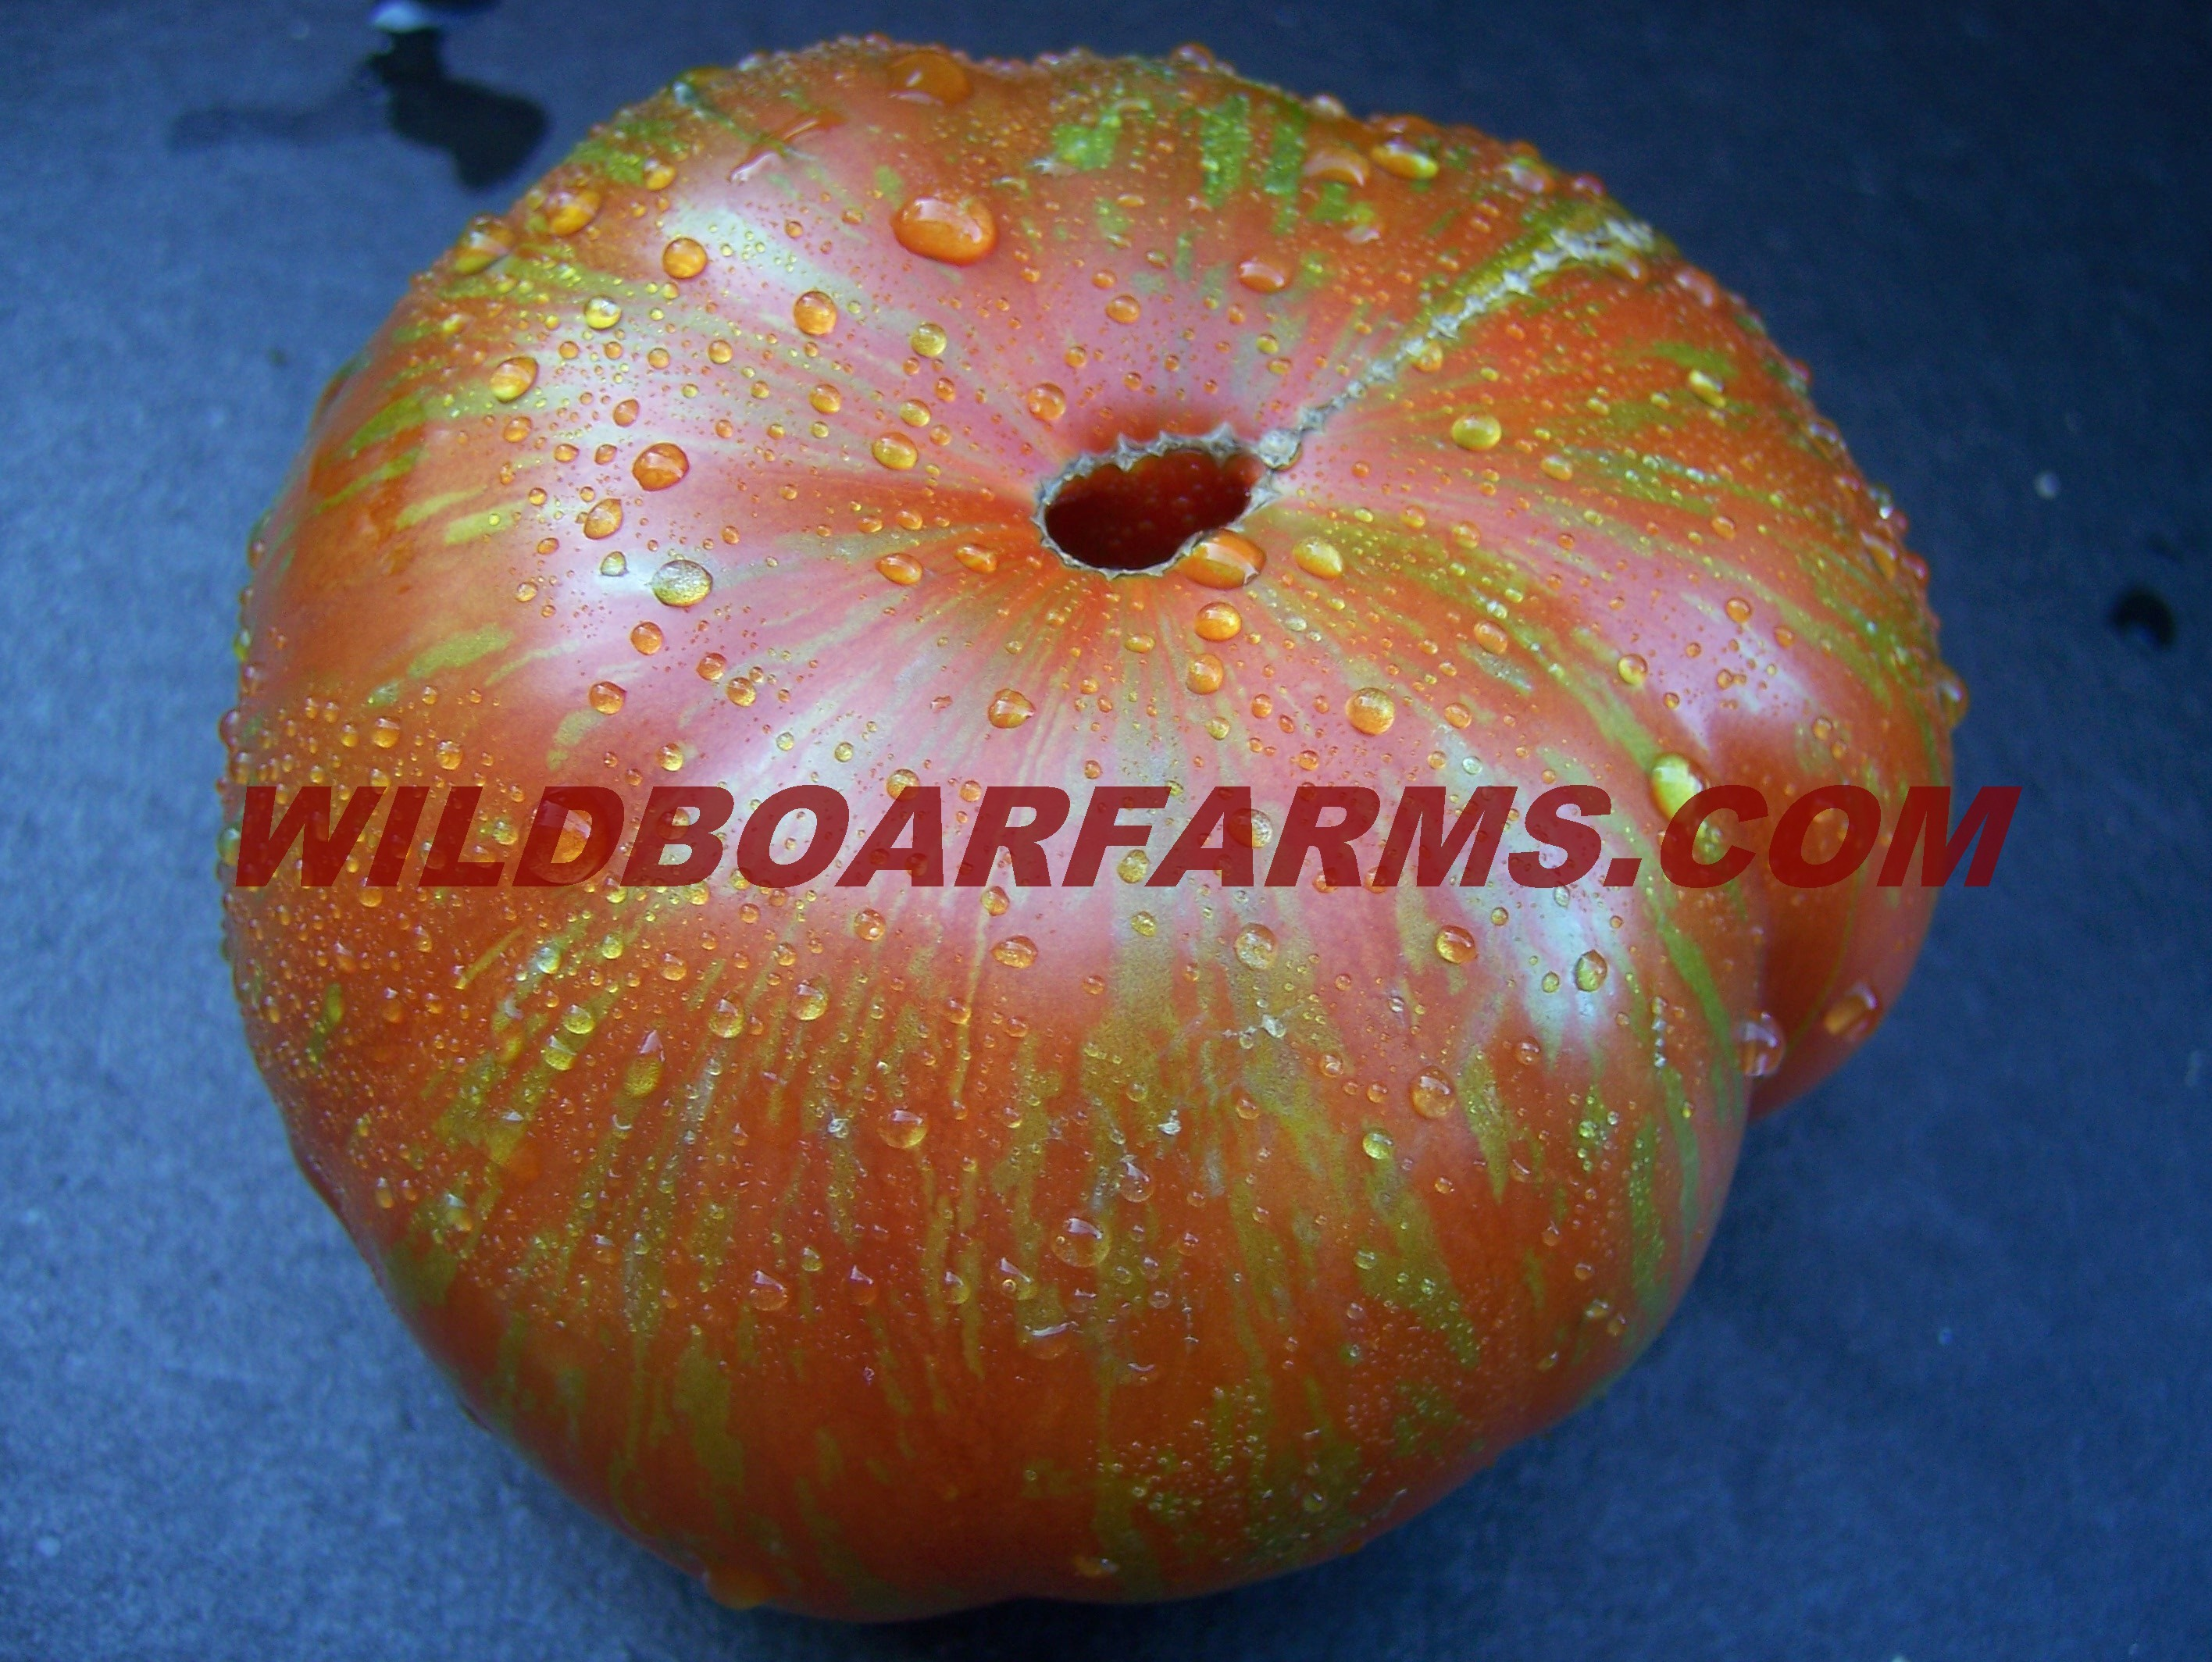 Wild Boar Farms Tomatoes 34